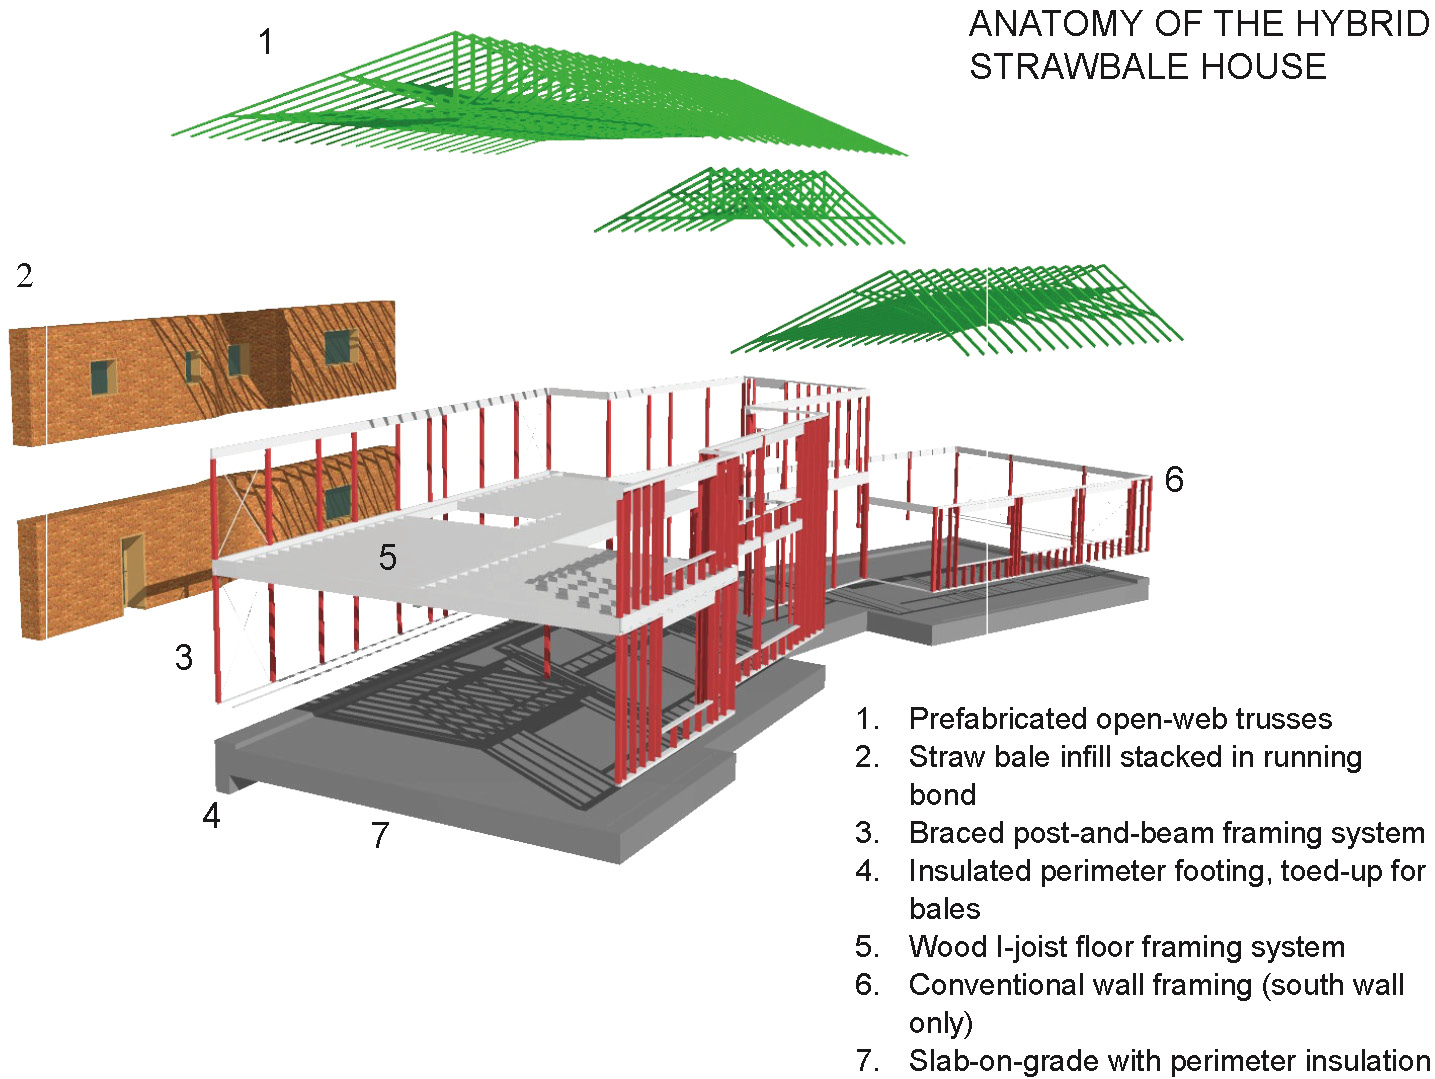 The Modern Strawbale House: Machine for Sustainability ...